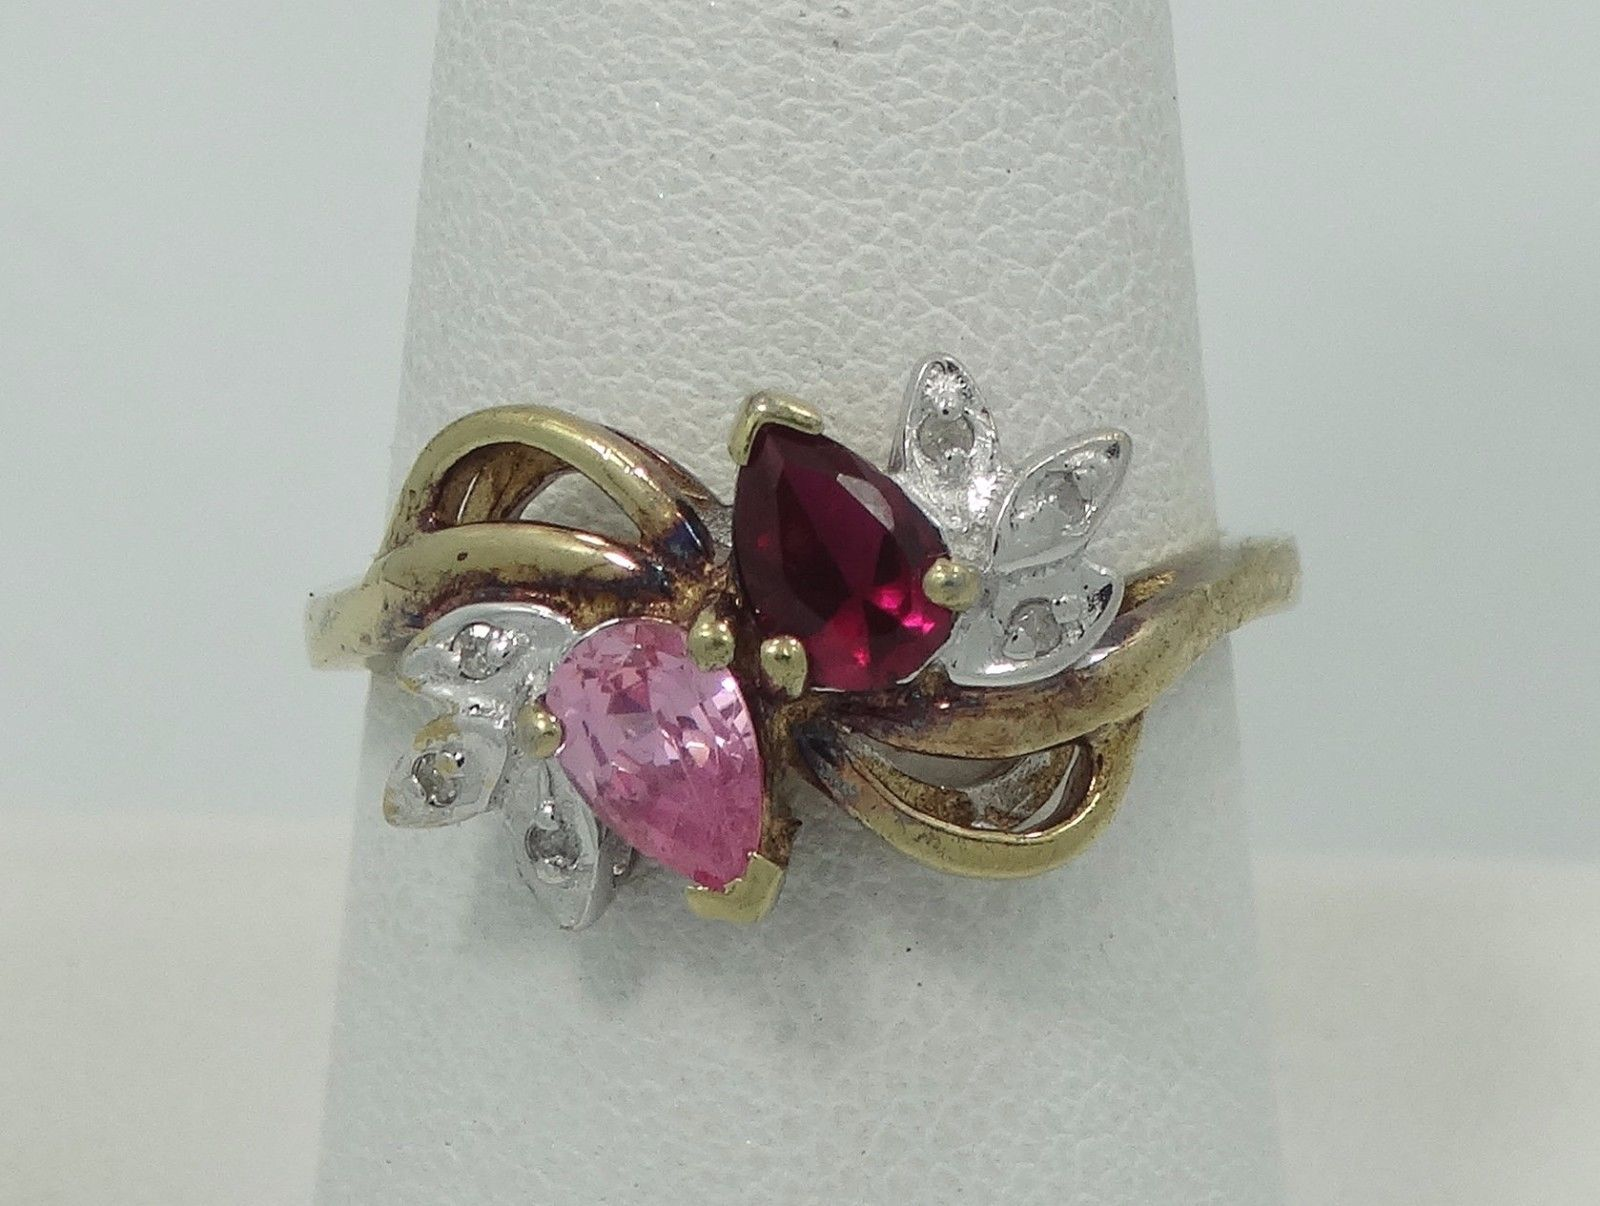 Jewelry estate k white gold vintage star ruby diamond ring size